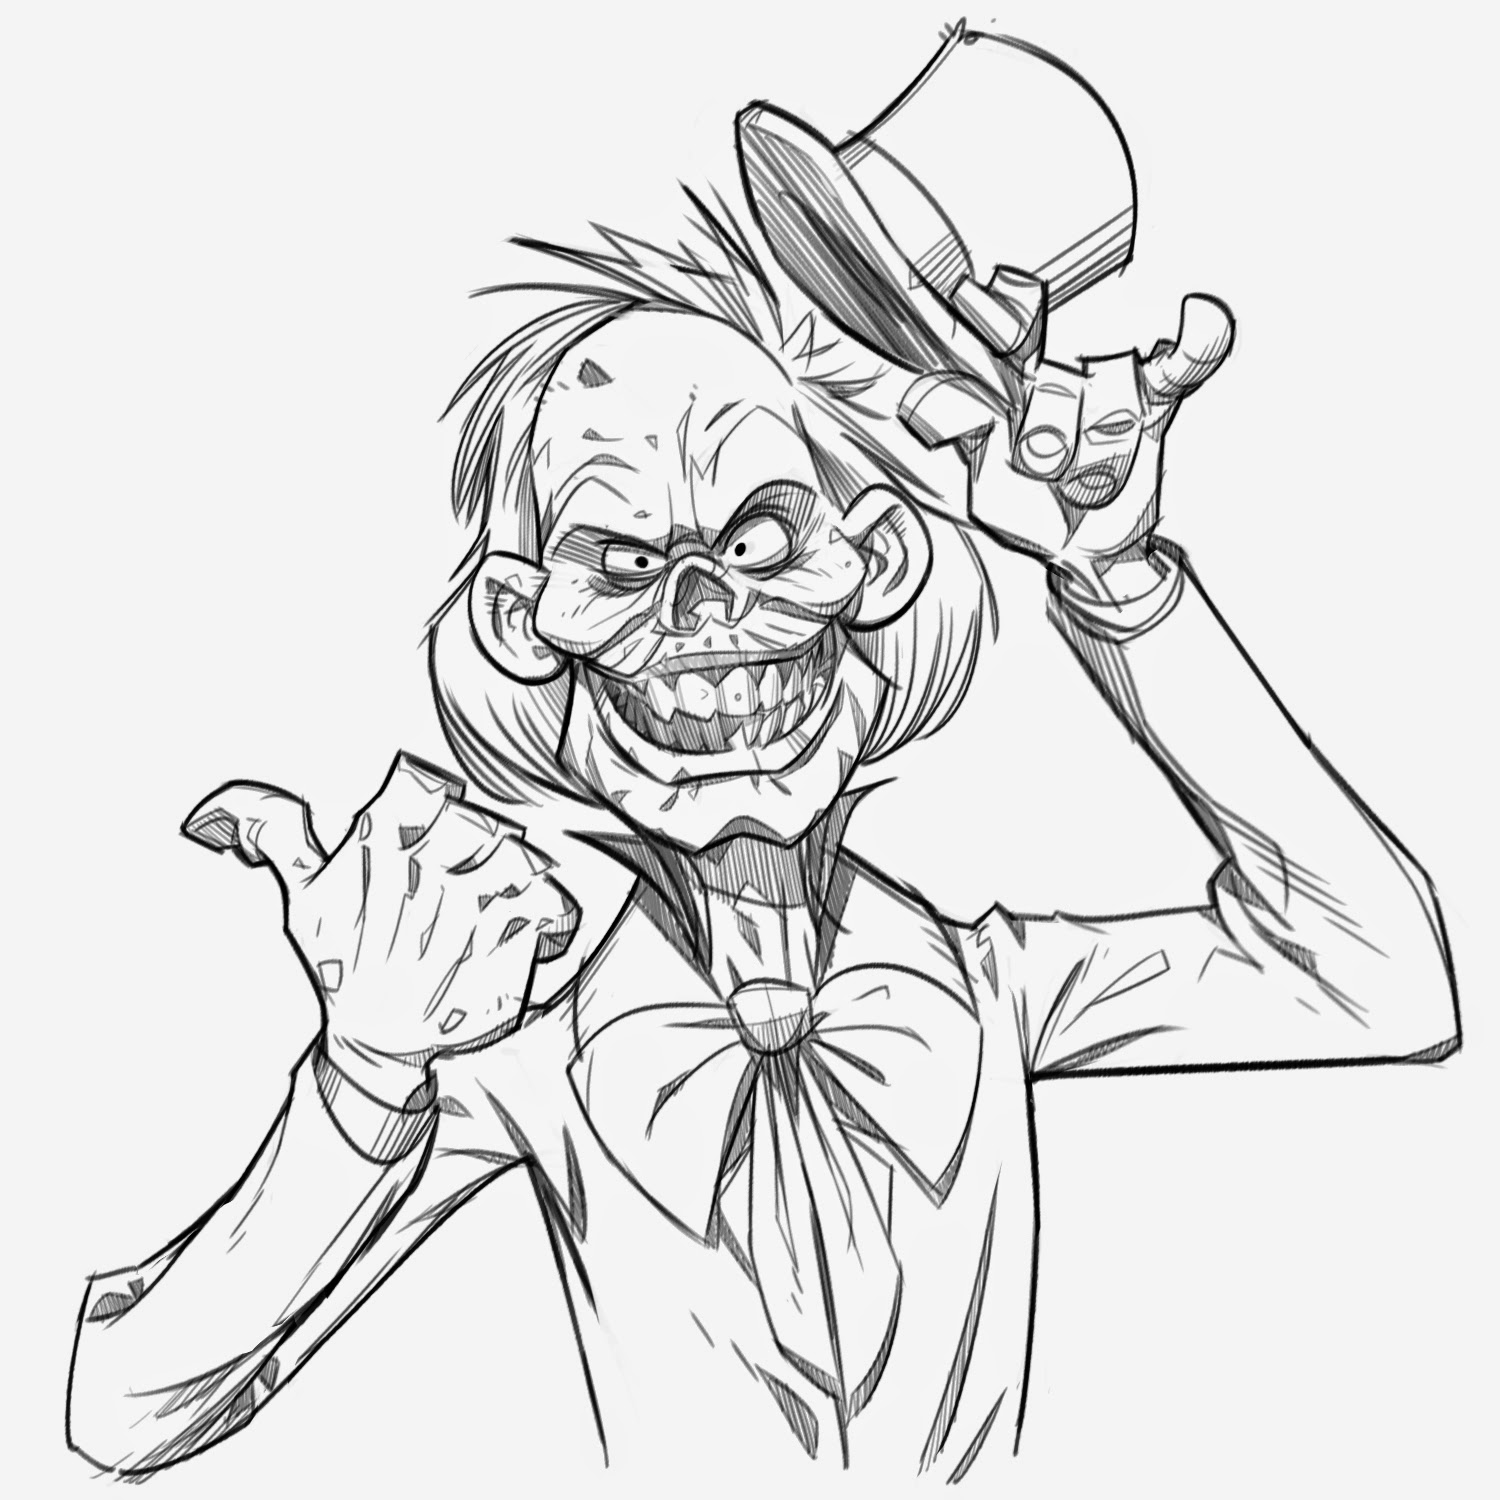 P.Cohen Sketch Blog: Hitchhiking Ghost part 1